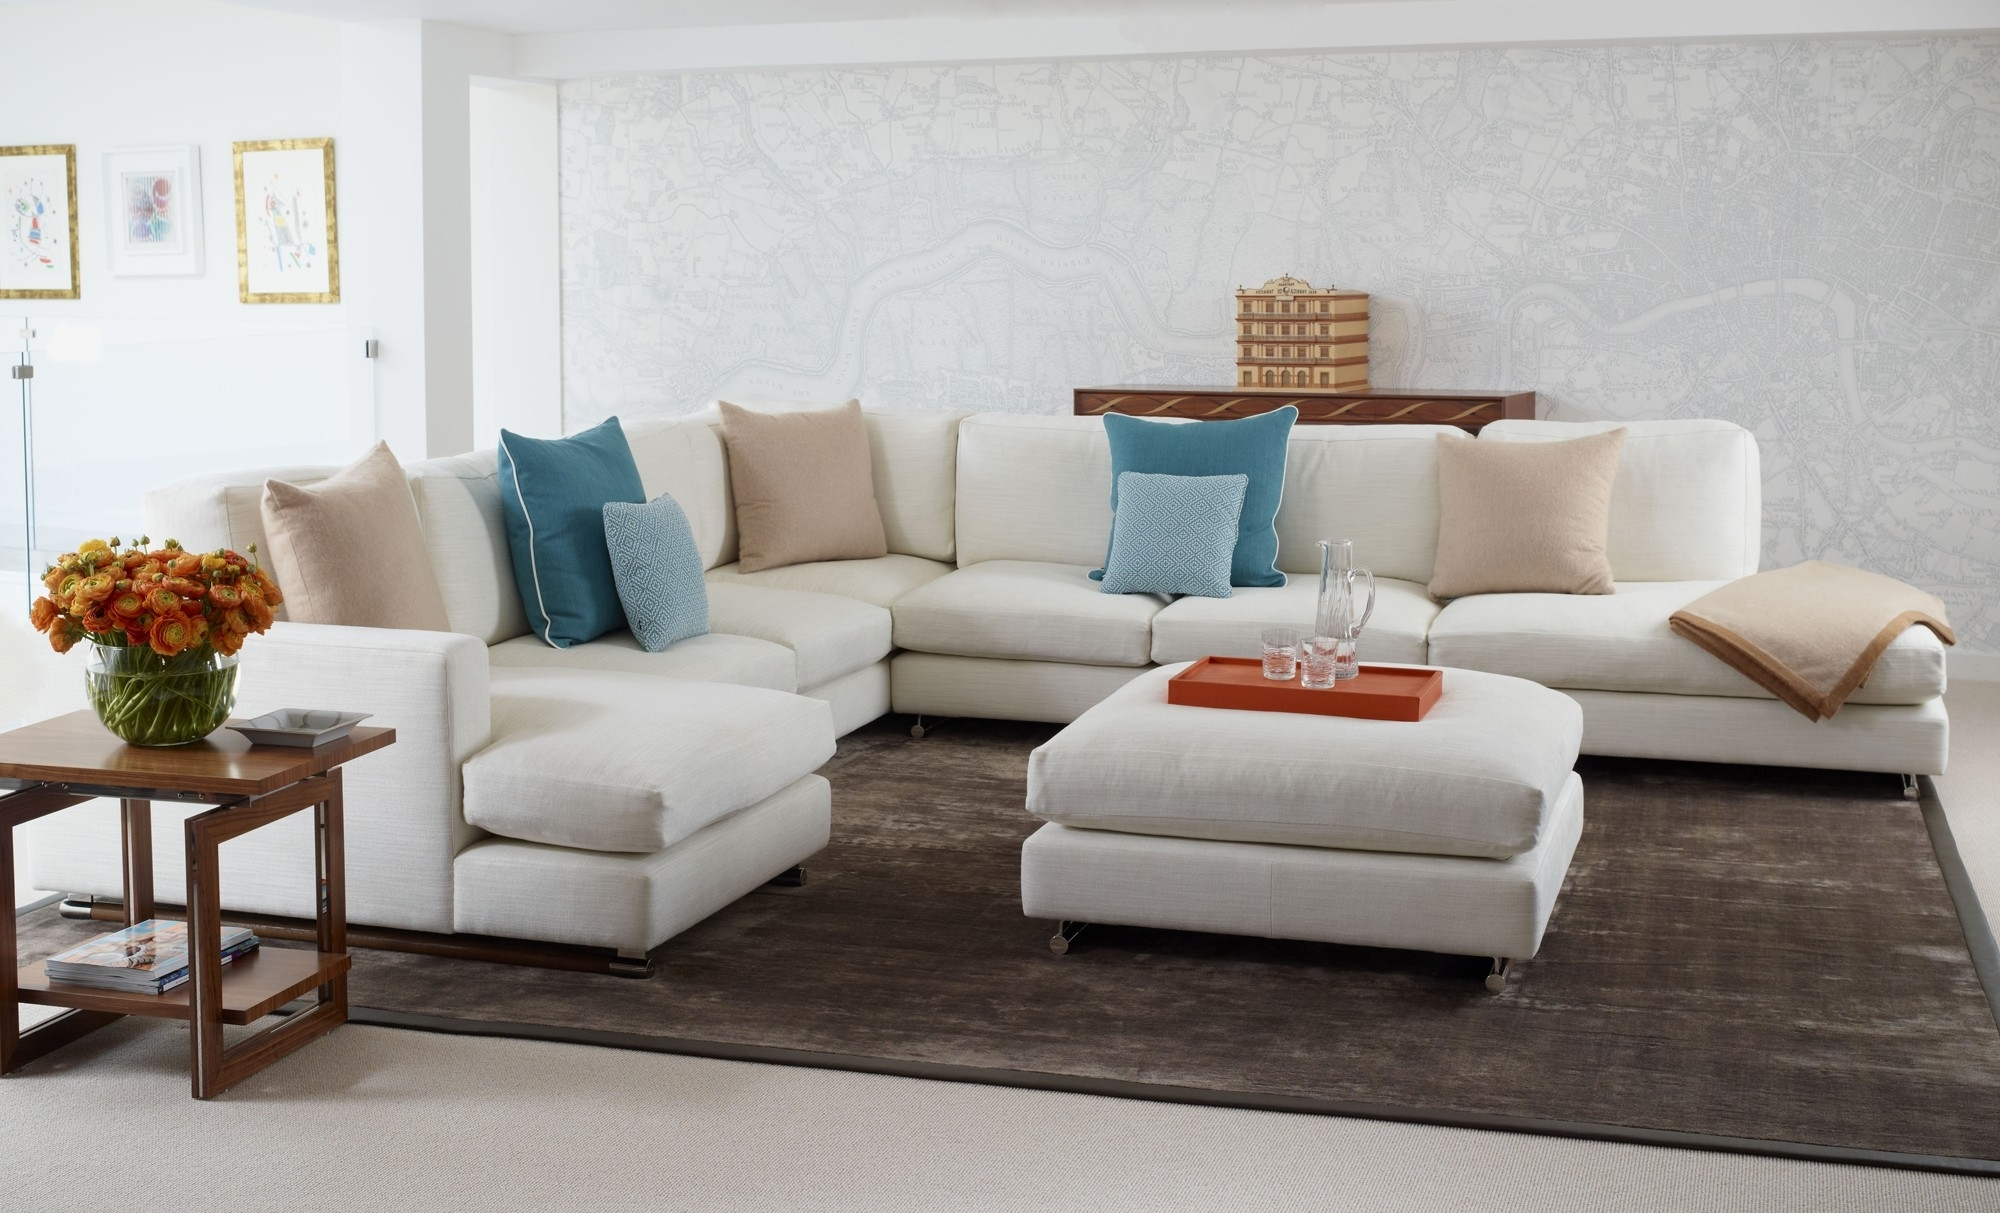 Simple Modular Sectional Sofa Bed Idea Hd Wallpaper Images Awesome Intended For Favorite Modular Sectional Sofas (View 14 of 20)